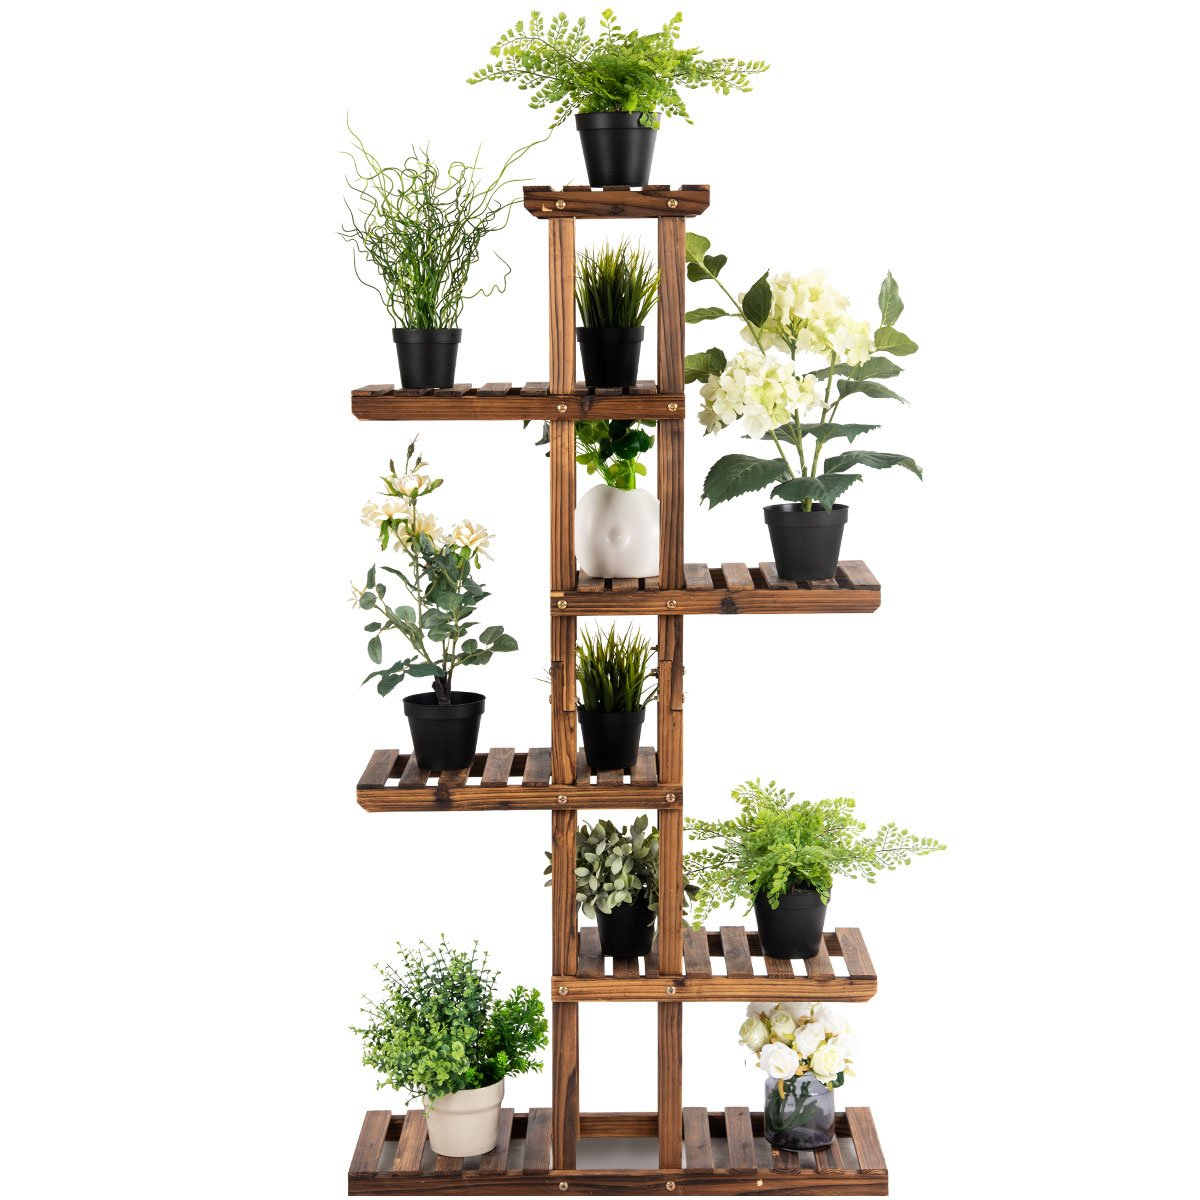 Giantex Flower Rack Wood Plant Stand 7 Wood Shelves 11 Pots Bonsai Display Shelf Indoor Outdoor Yard Garden Patio Balcony Living Room Multifunctional Storage Rack Bookshelf W/Hollow-Out Rack by Giantex